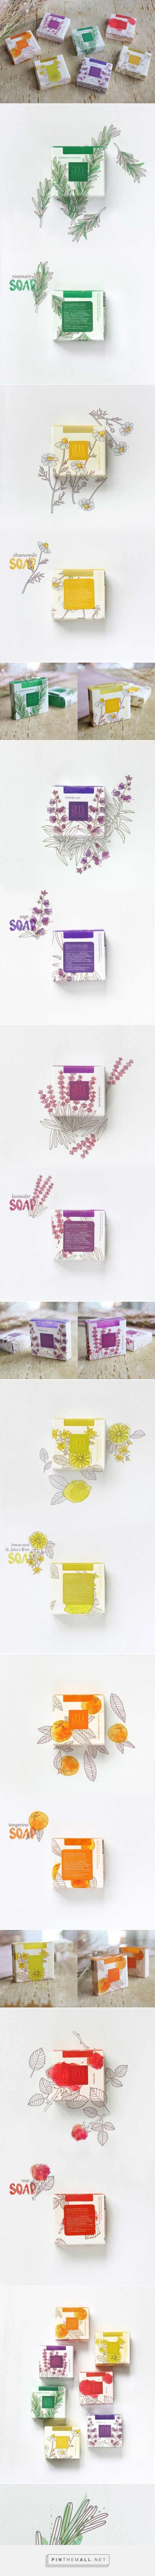 Aroma Mediterranea soaps         on          Packaging of the World - Creative Package Design Gallery - created via http://pinthemall.net